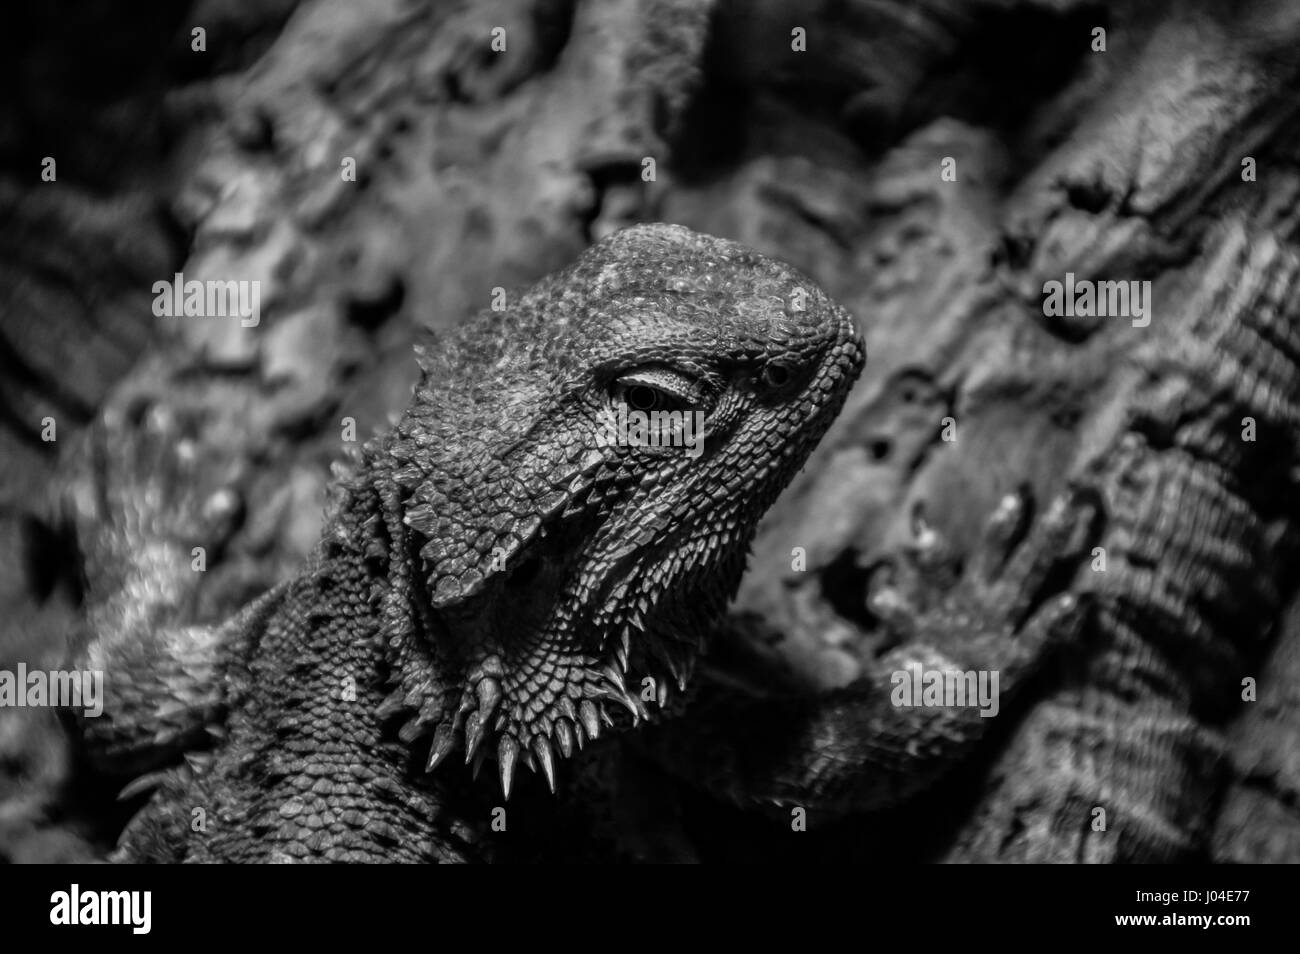 Bearded Dragon - Stock Image